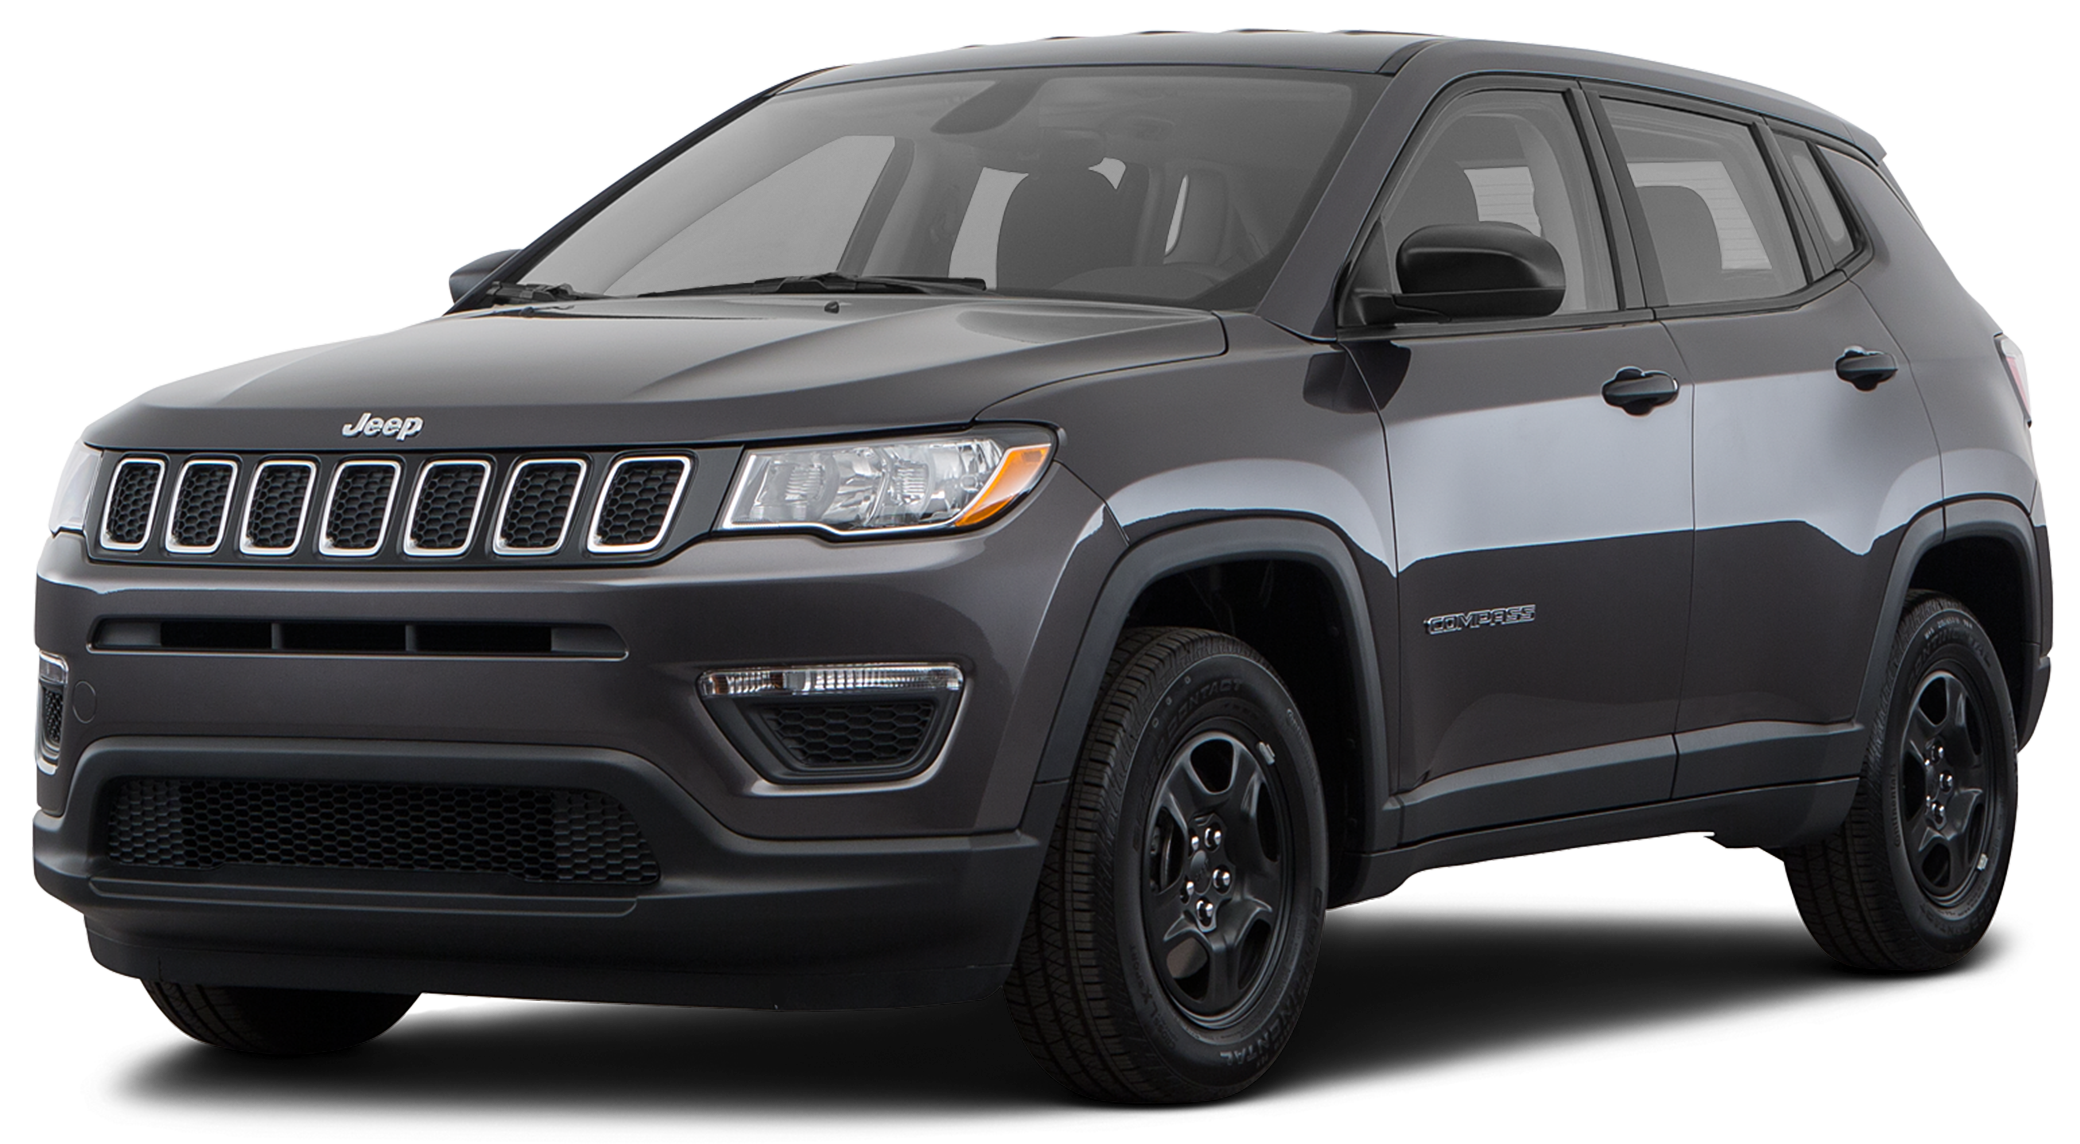 Review & Compare Jeep Compass at Larry H. Miller Chrysler Jeep Tucson